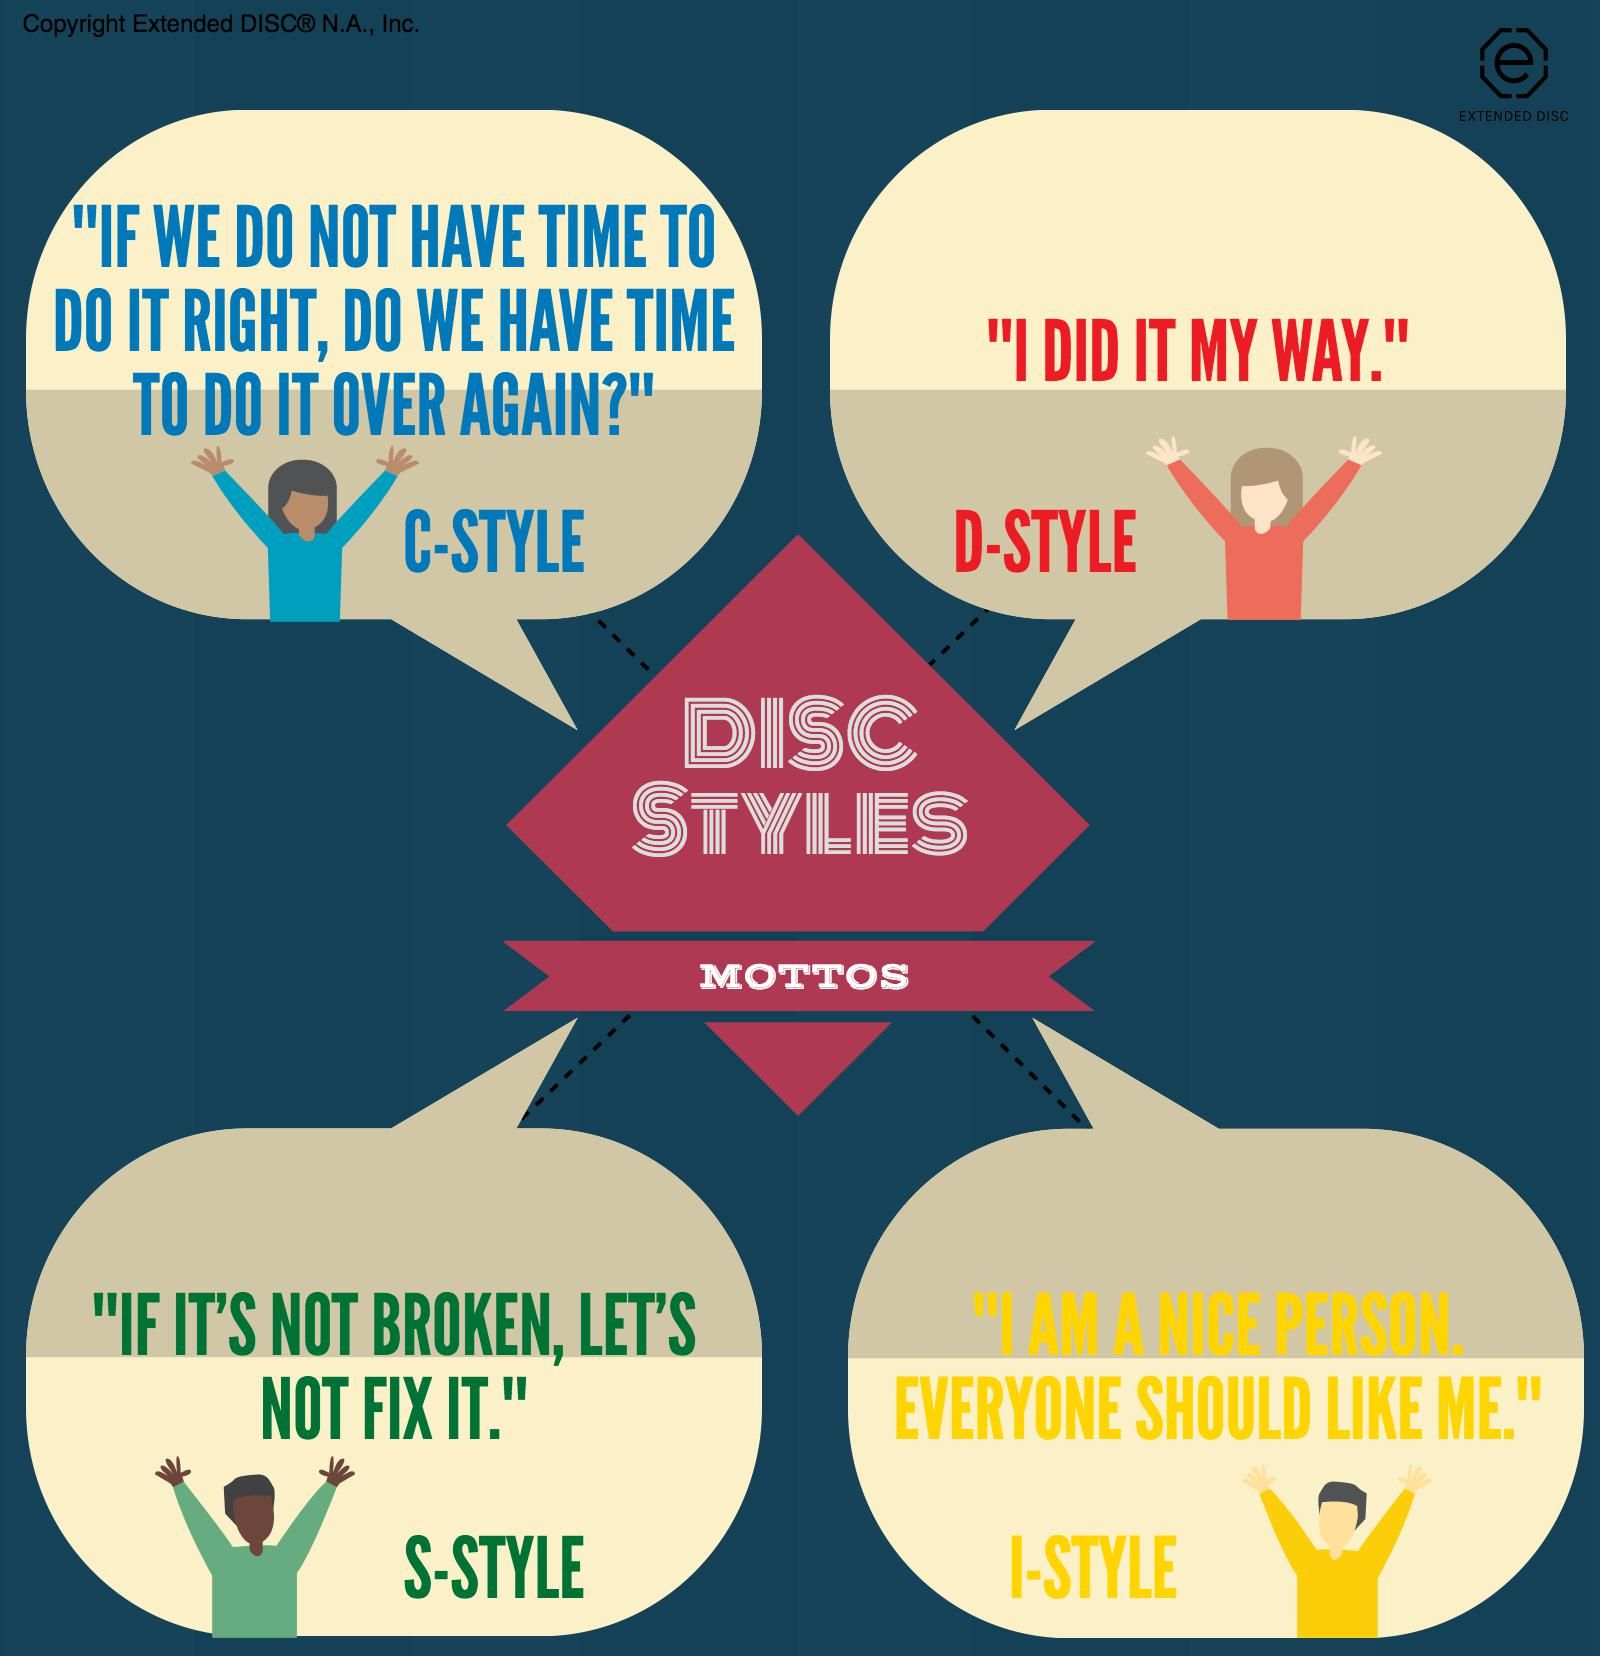 Disc Styles And Their Mottos Visit Extendeddisc